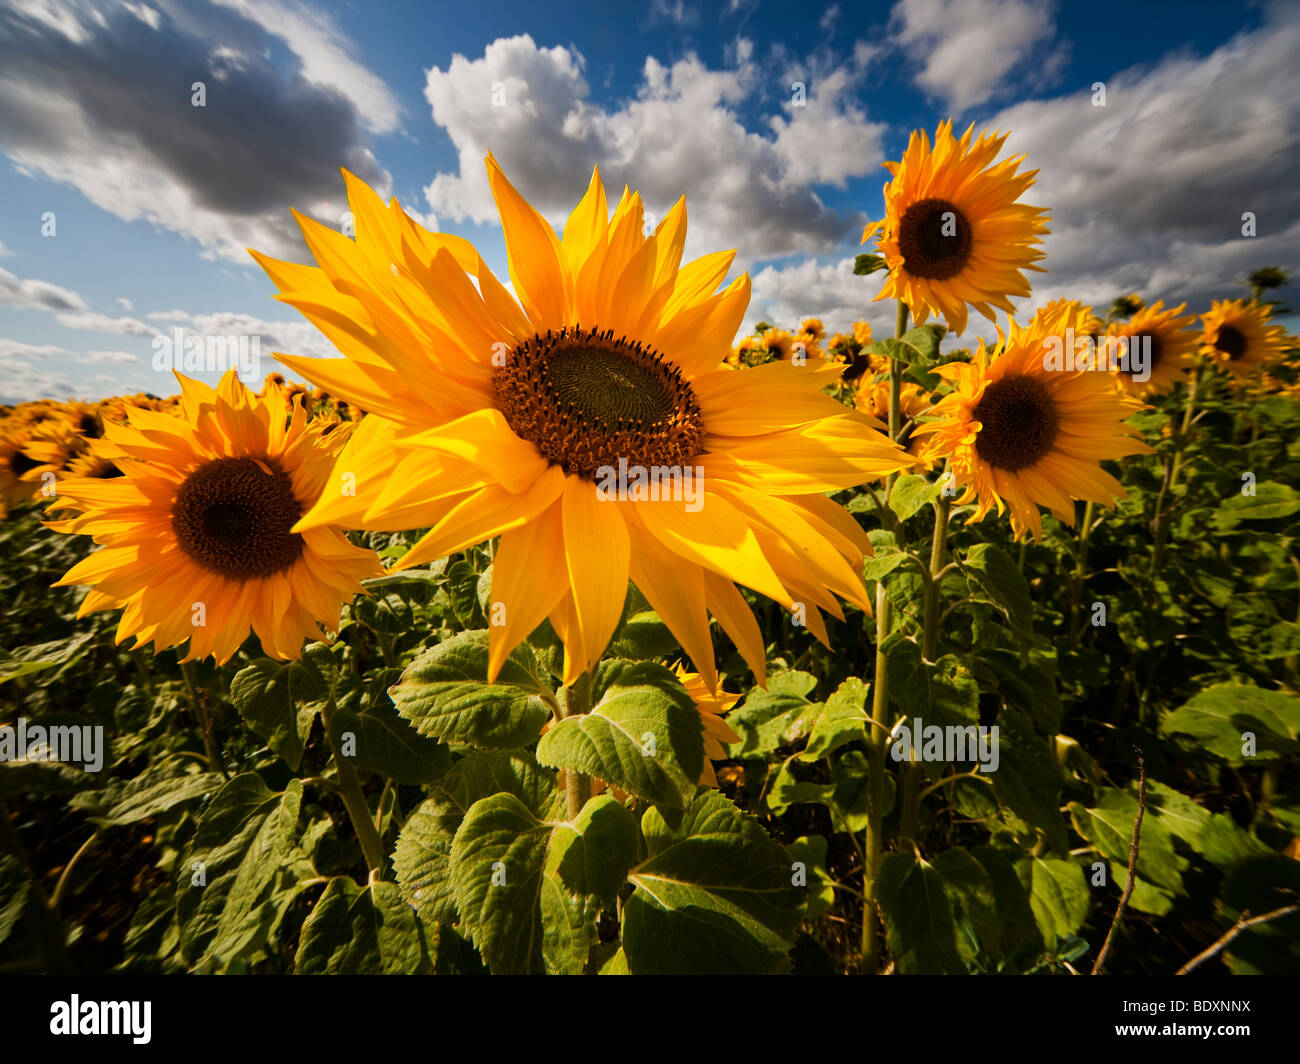 Experimental crop of Sunflowers in Northern England - Stock Image